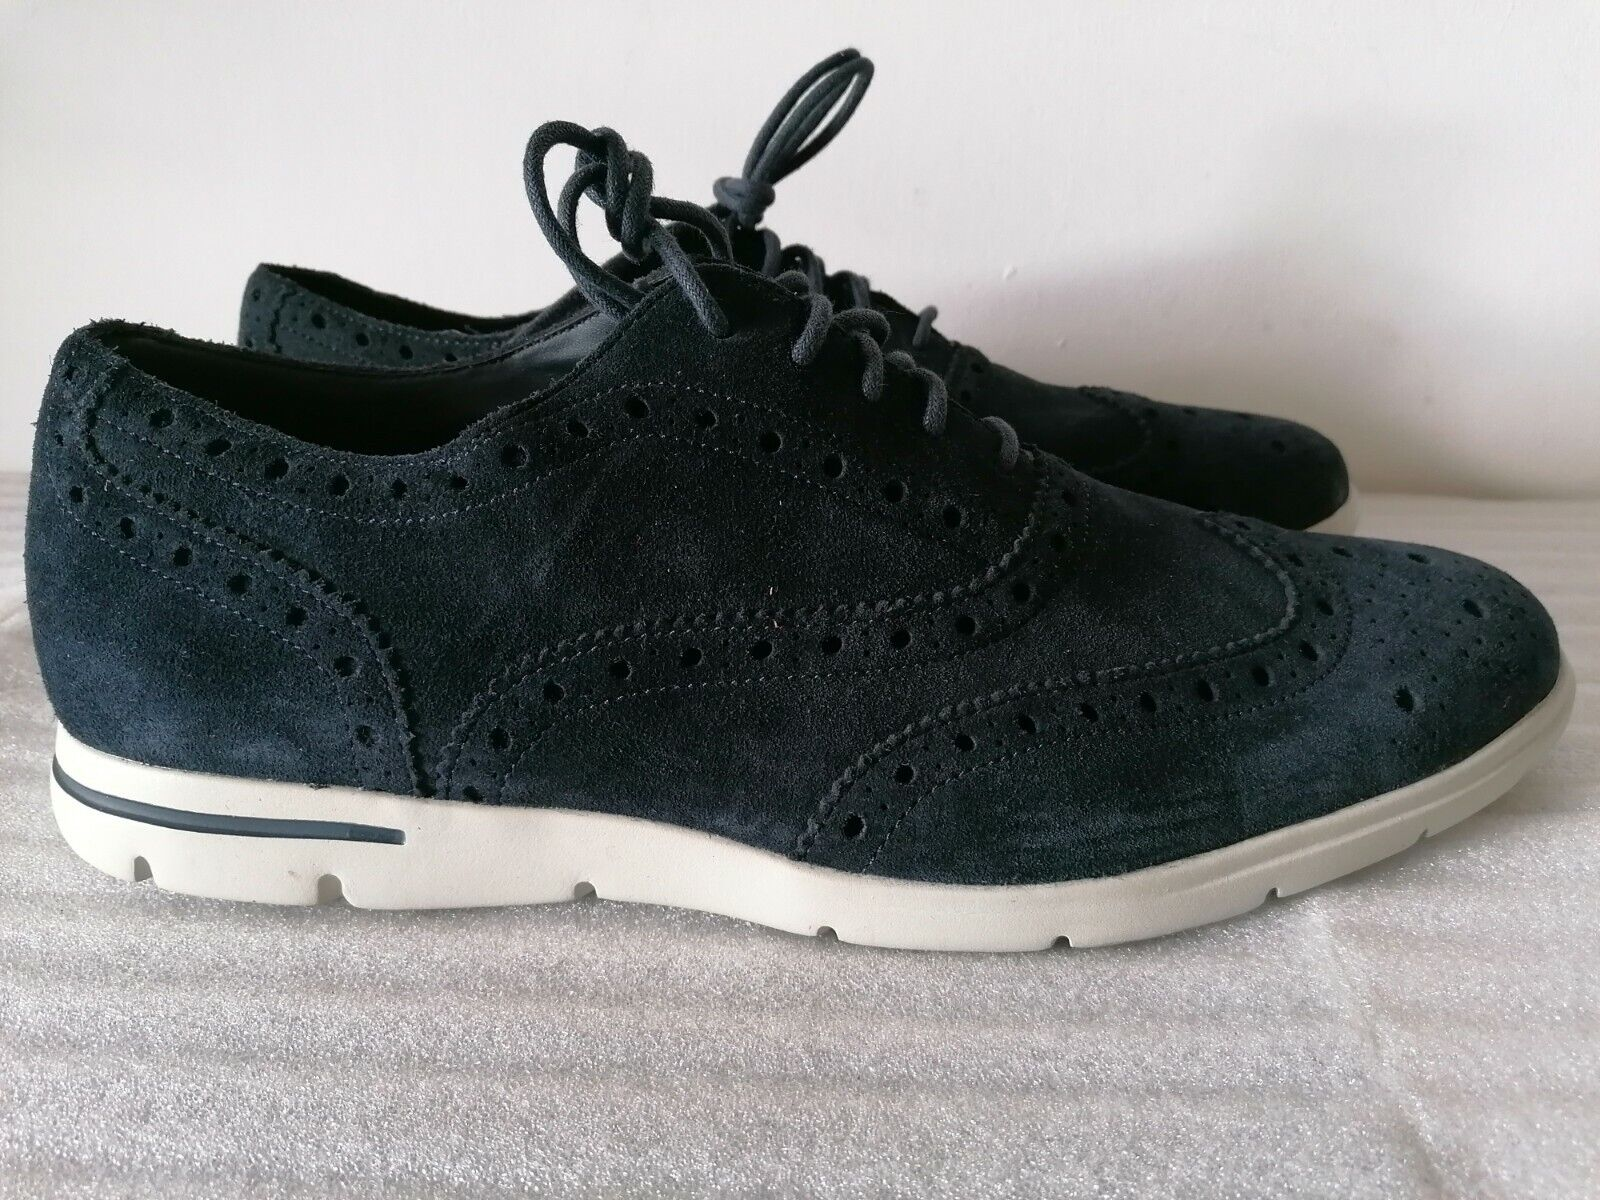 CLARKS DENNER LIMIT MENS NAVY SUEDE LIGHTWEIGHT CASUAL SHOES TRAINERS UK SIZE 10